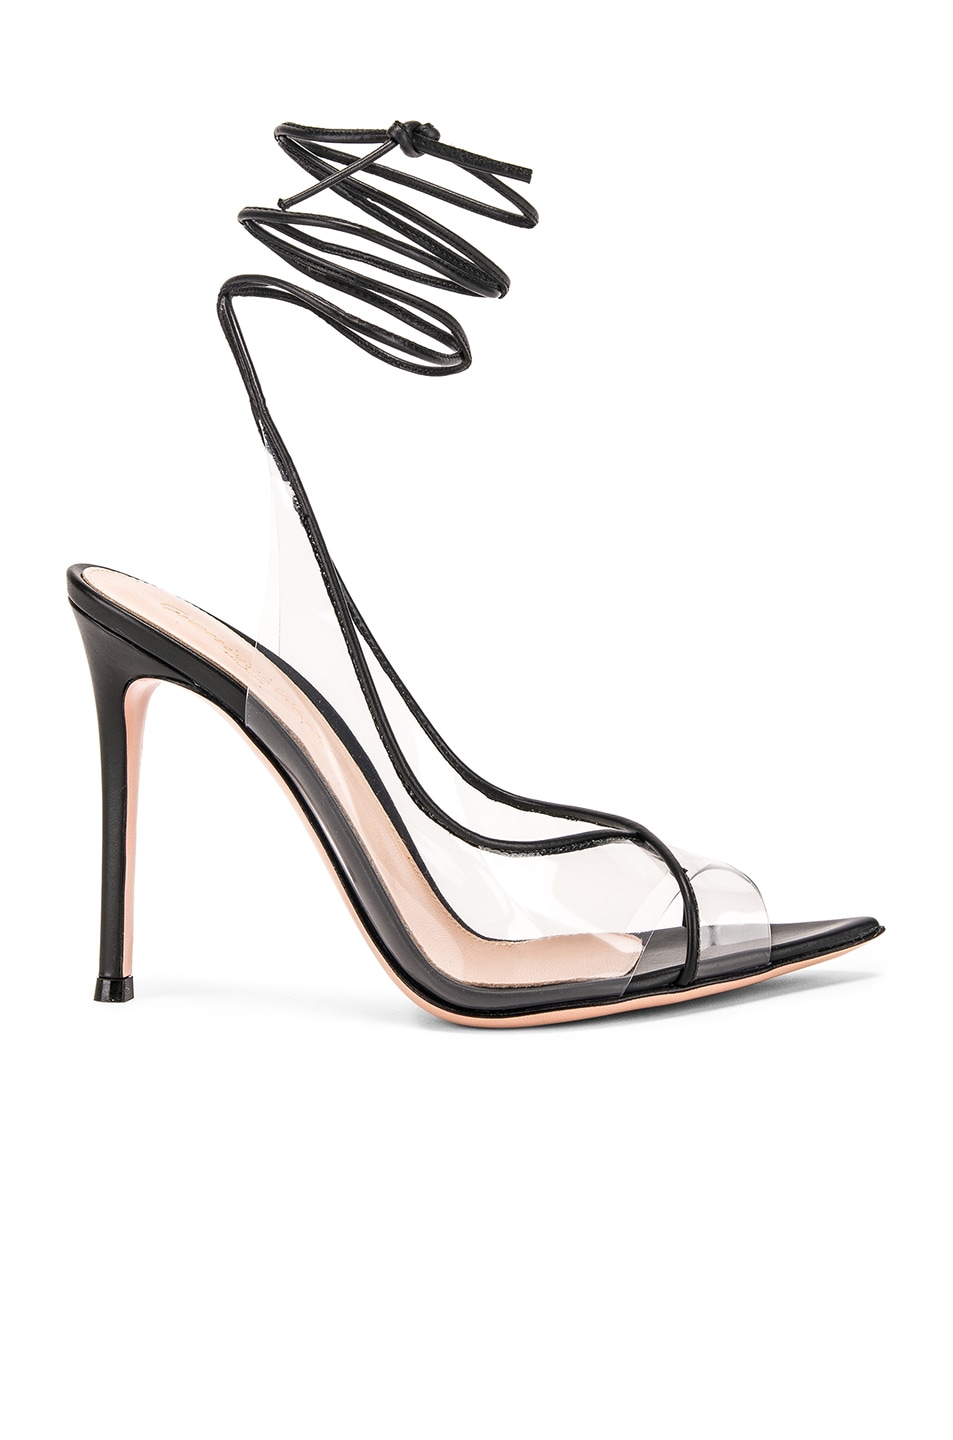 Image 1 of Gianvito Rossi Denise Heels in Black & Transparent